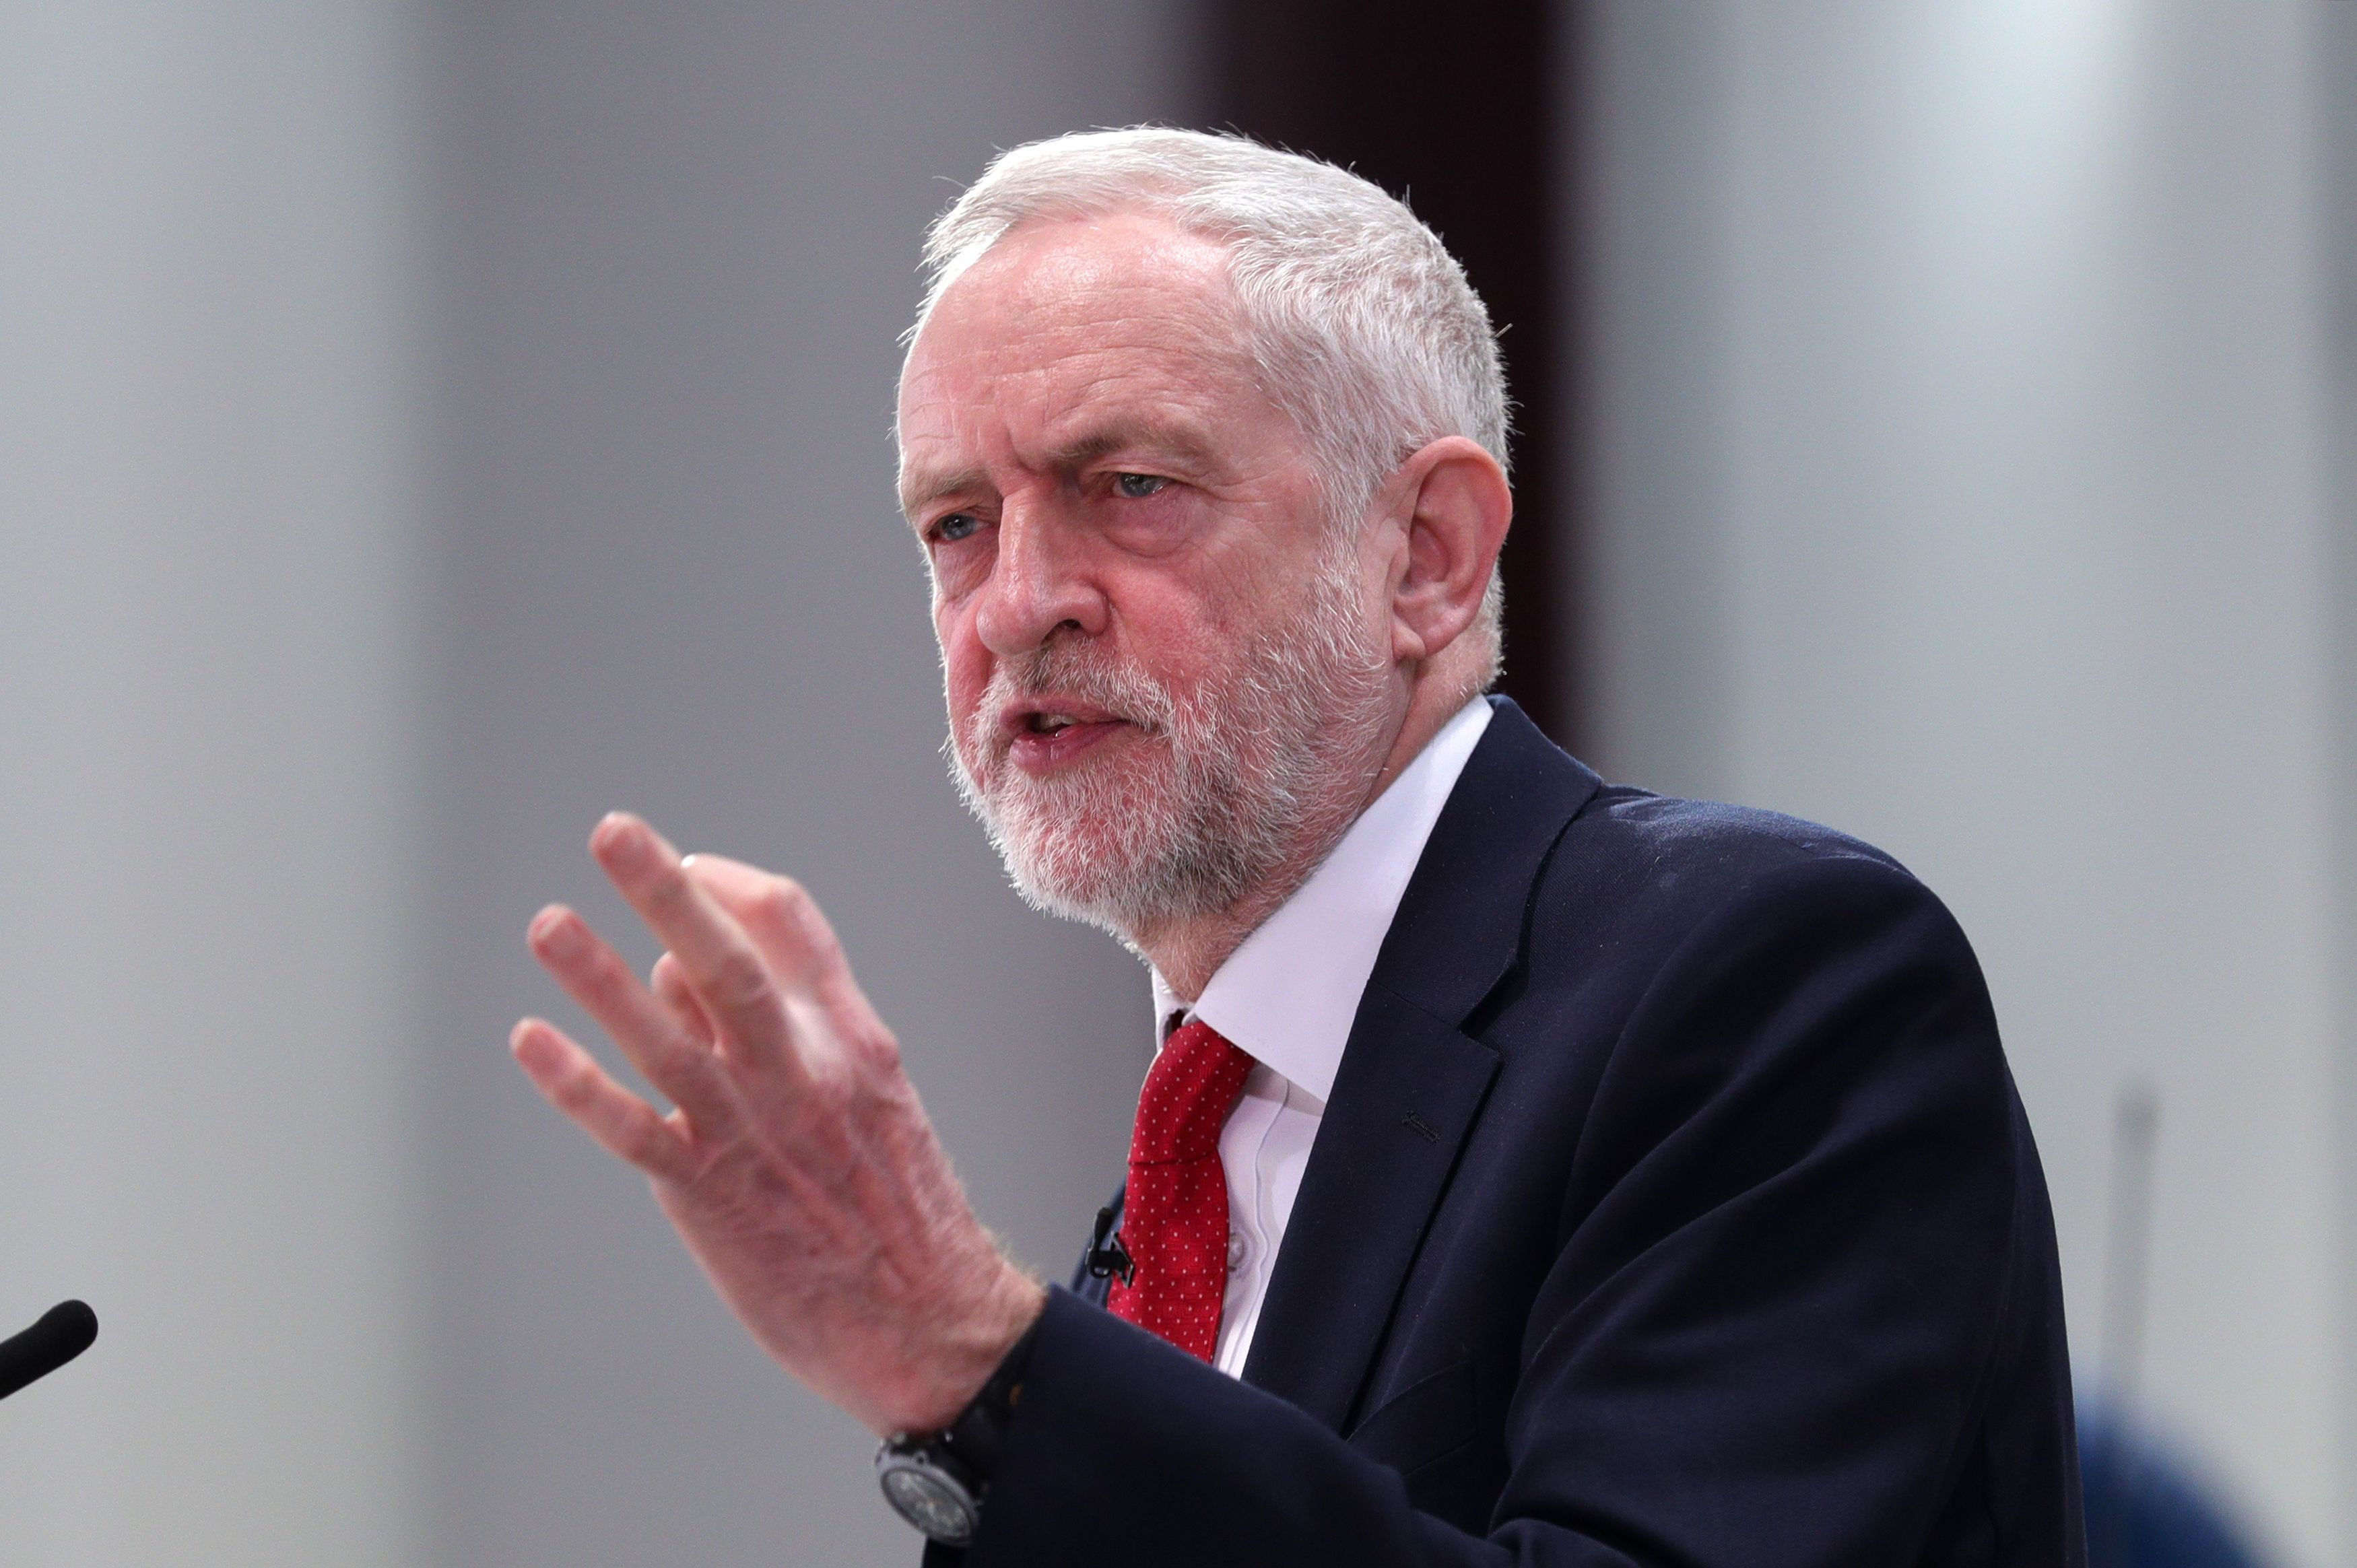 Corbyn admits membership of controversial FB group, but denies seeing anti-Semitic posts